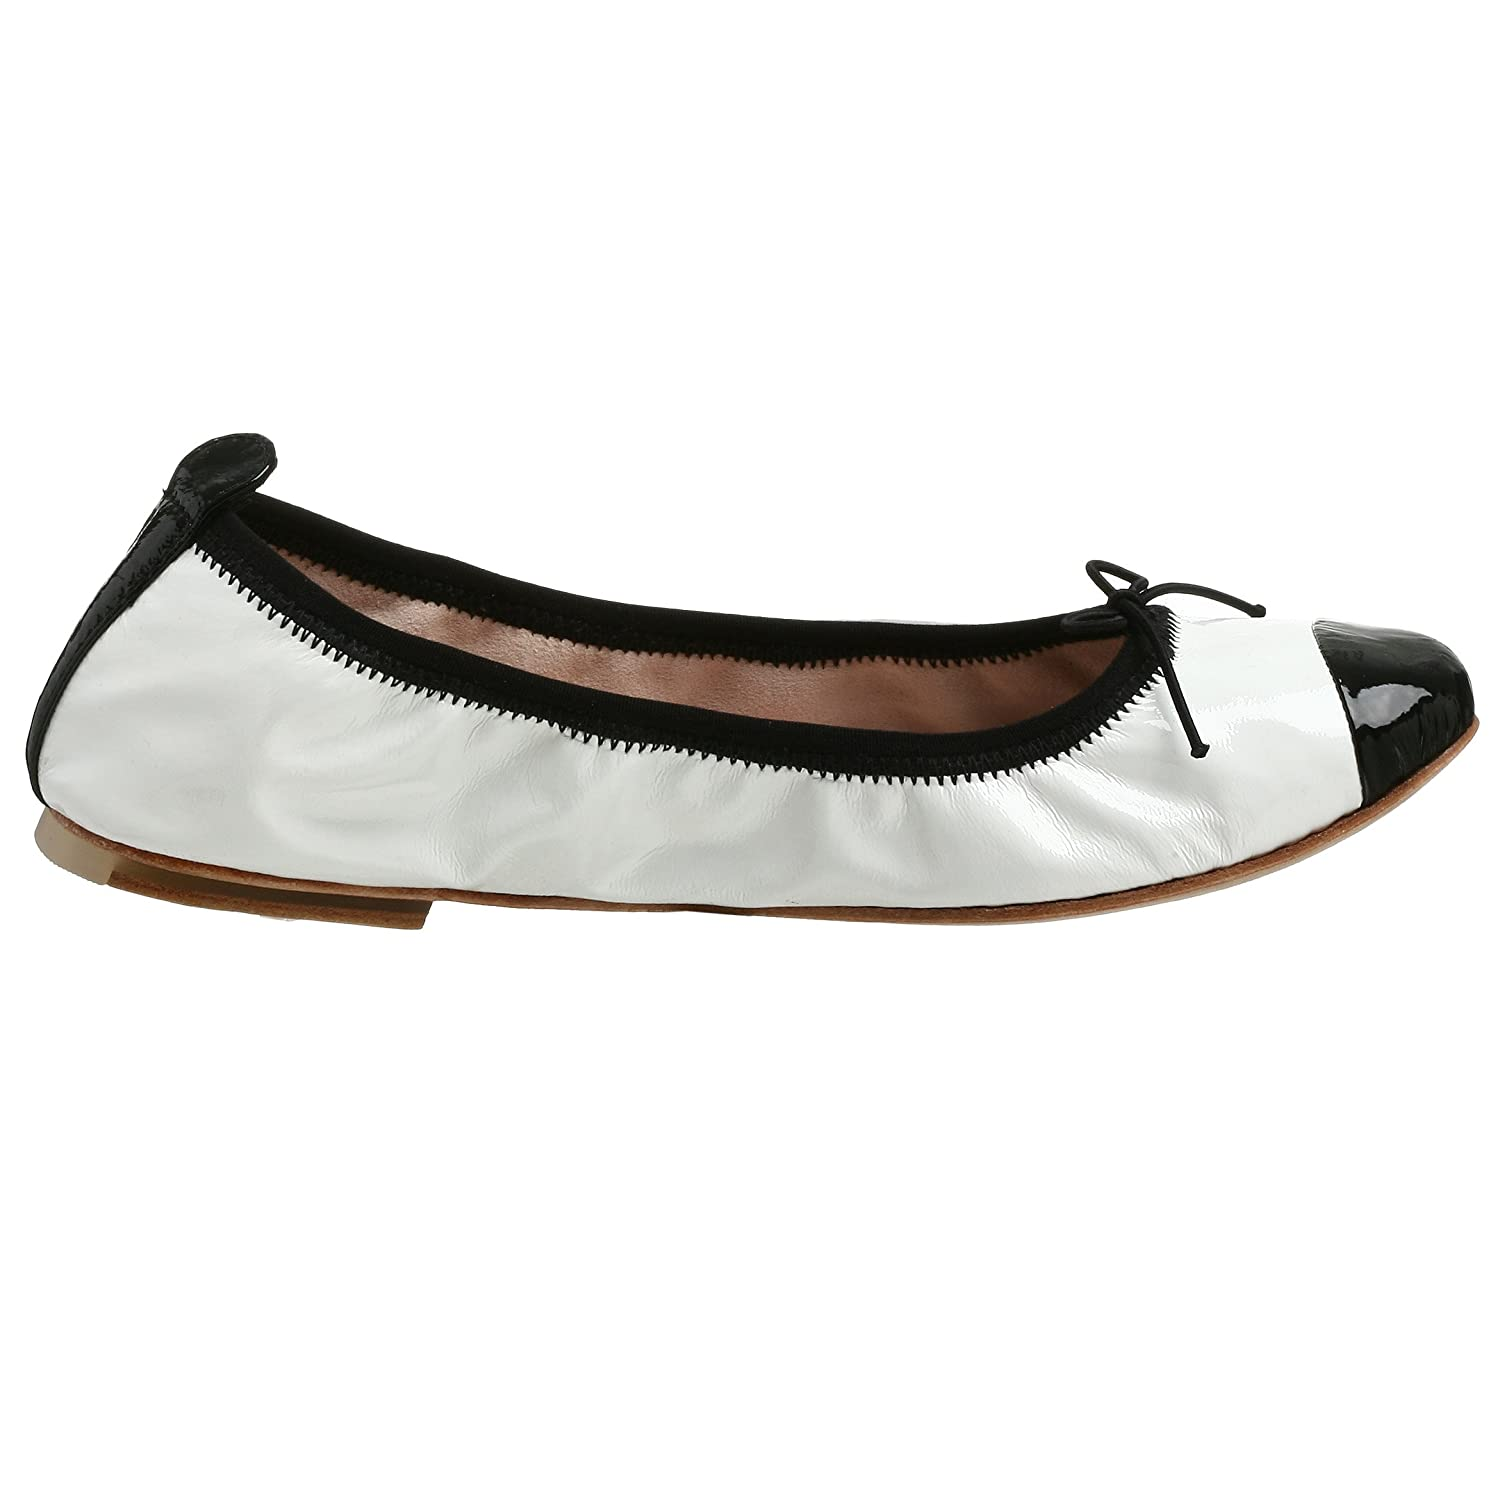 Bloch London Luxury Ballet Flat Ballet Flat - Free Overnight Shipping & Return Shipping: Endless.com :  bloch dance shoes retro flats